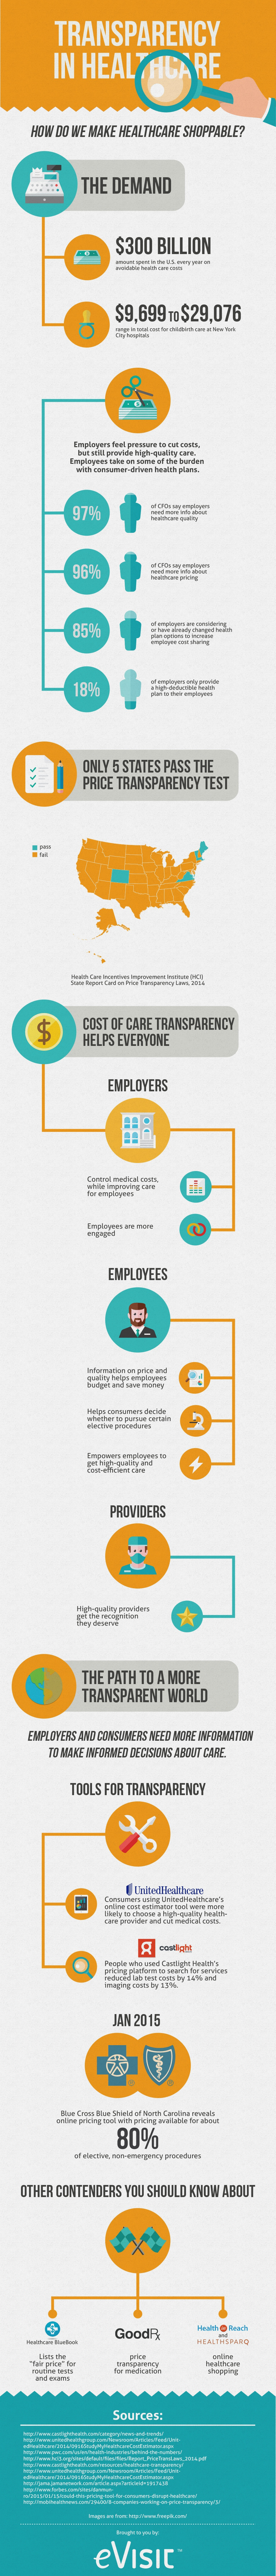 Healthcare Transparency Infographic